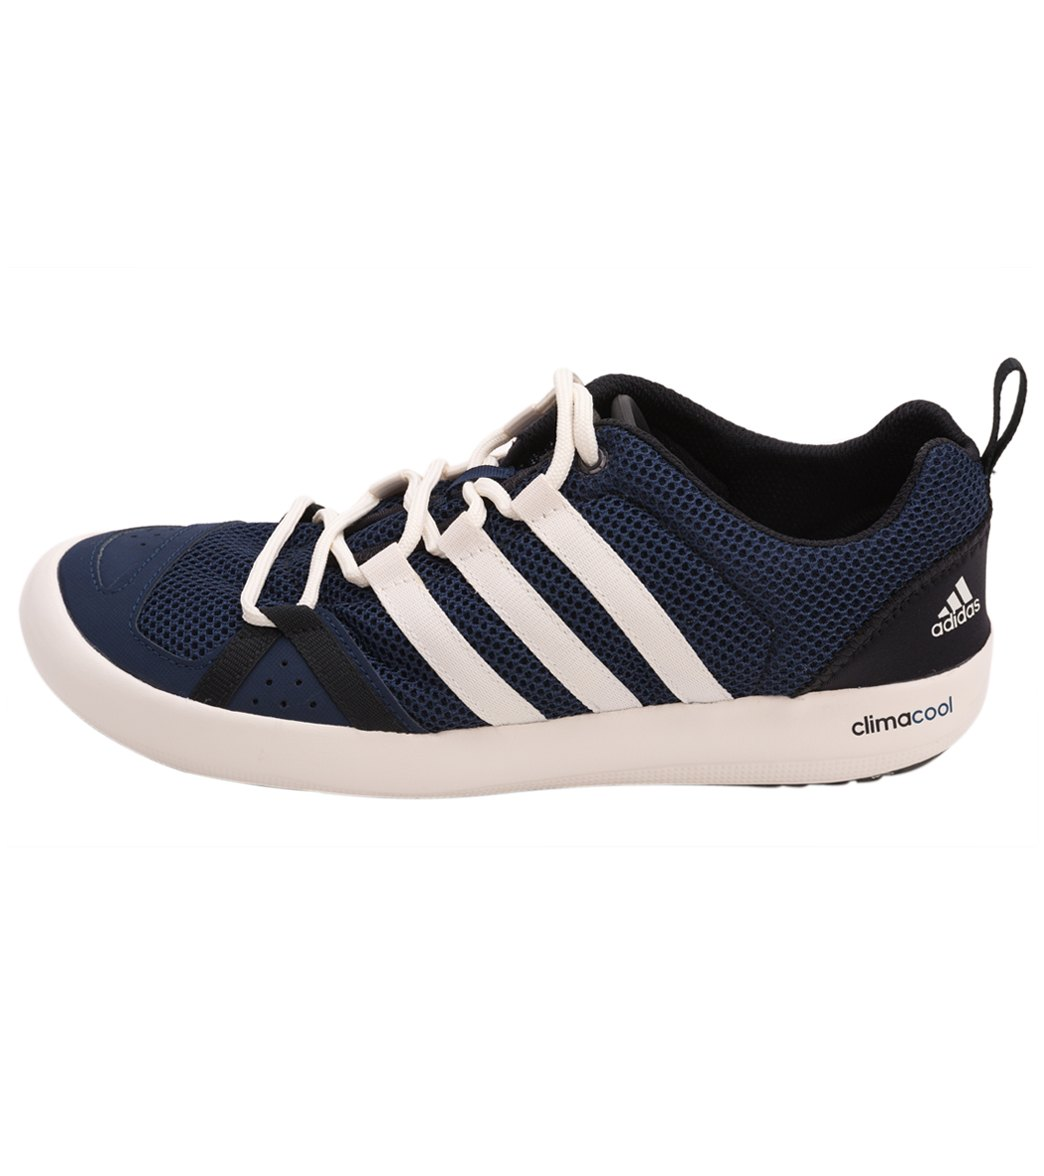 Adidas Men's Climacool Boat Lace Water Shoes at SwimOutlet.com ...